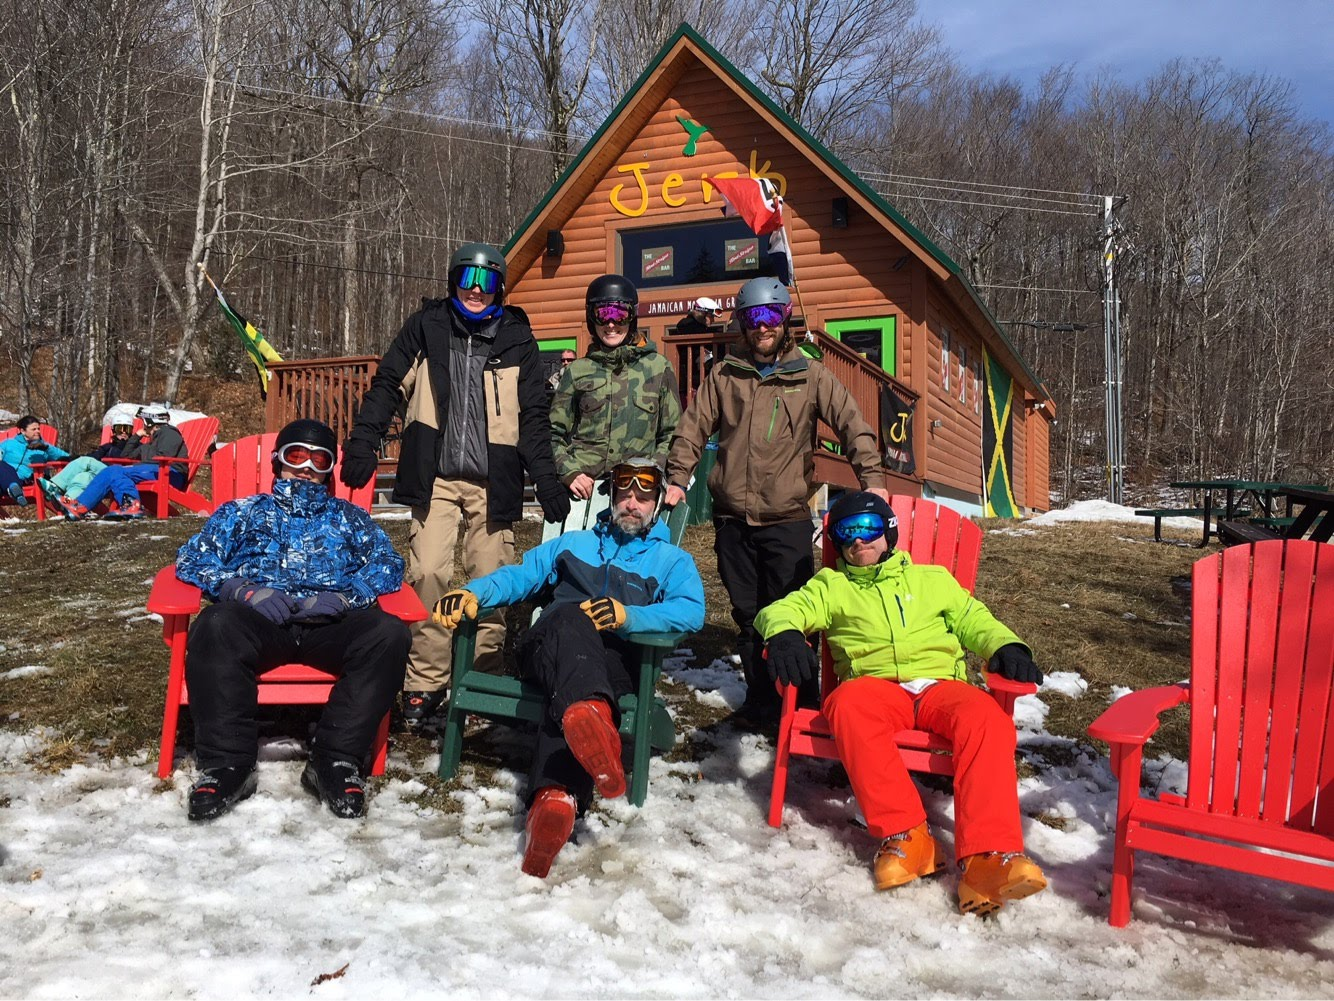 Skiers and snowboarders rest in front of restaurant